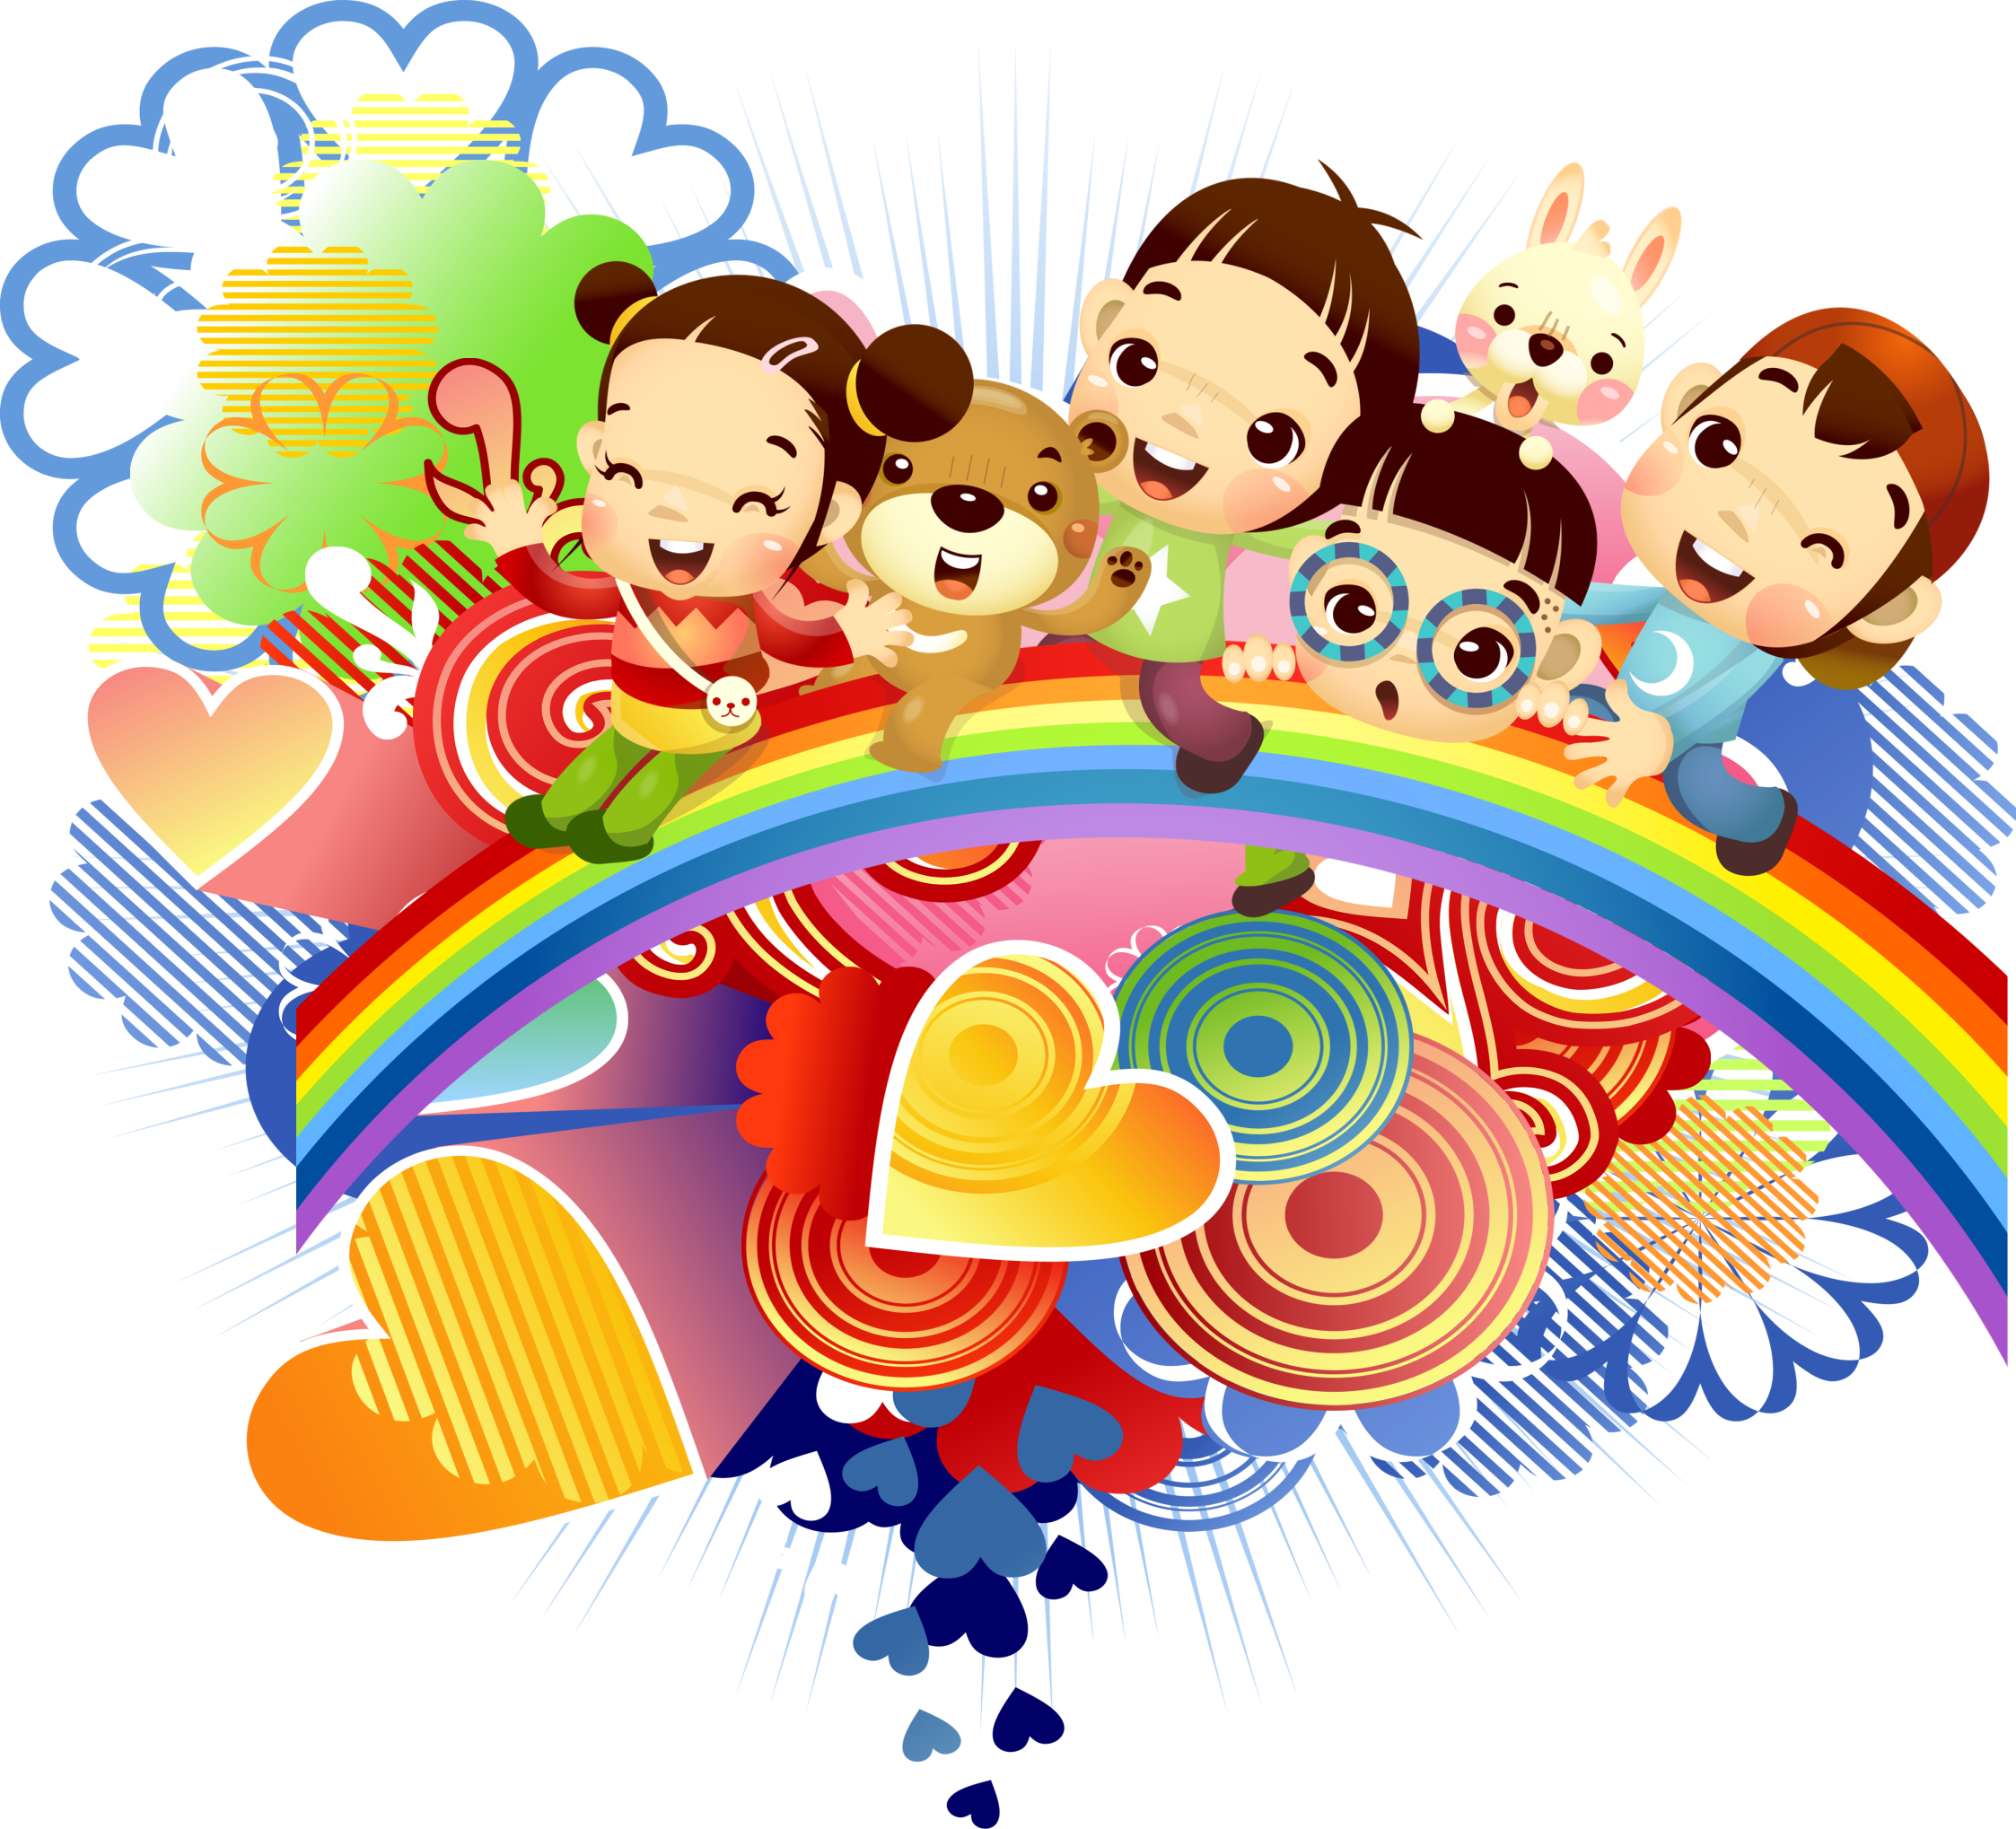 Elements drawing cute. Children s day cartoon